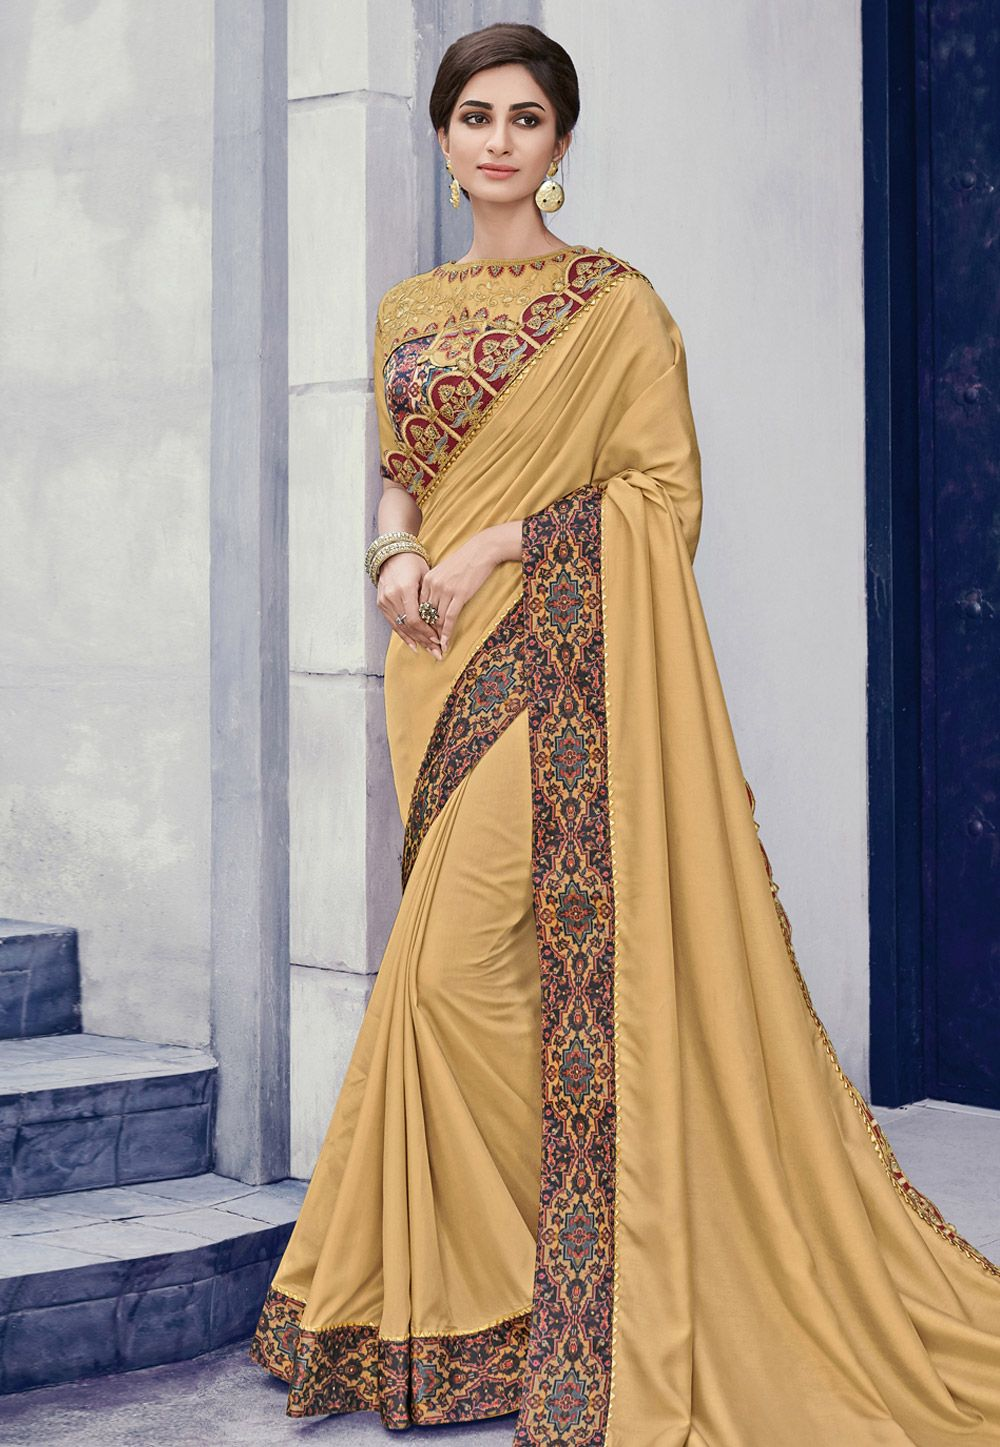 714909dc0f Buy Beige Silk Saree With Blouse 166305 with blouse online at lowest price  from vast collection of sarees at Indianclothstore.com.